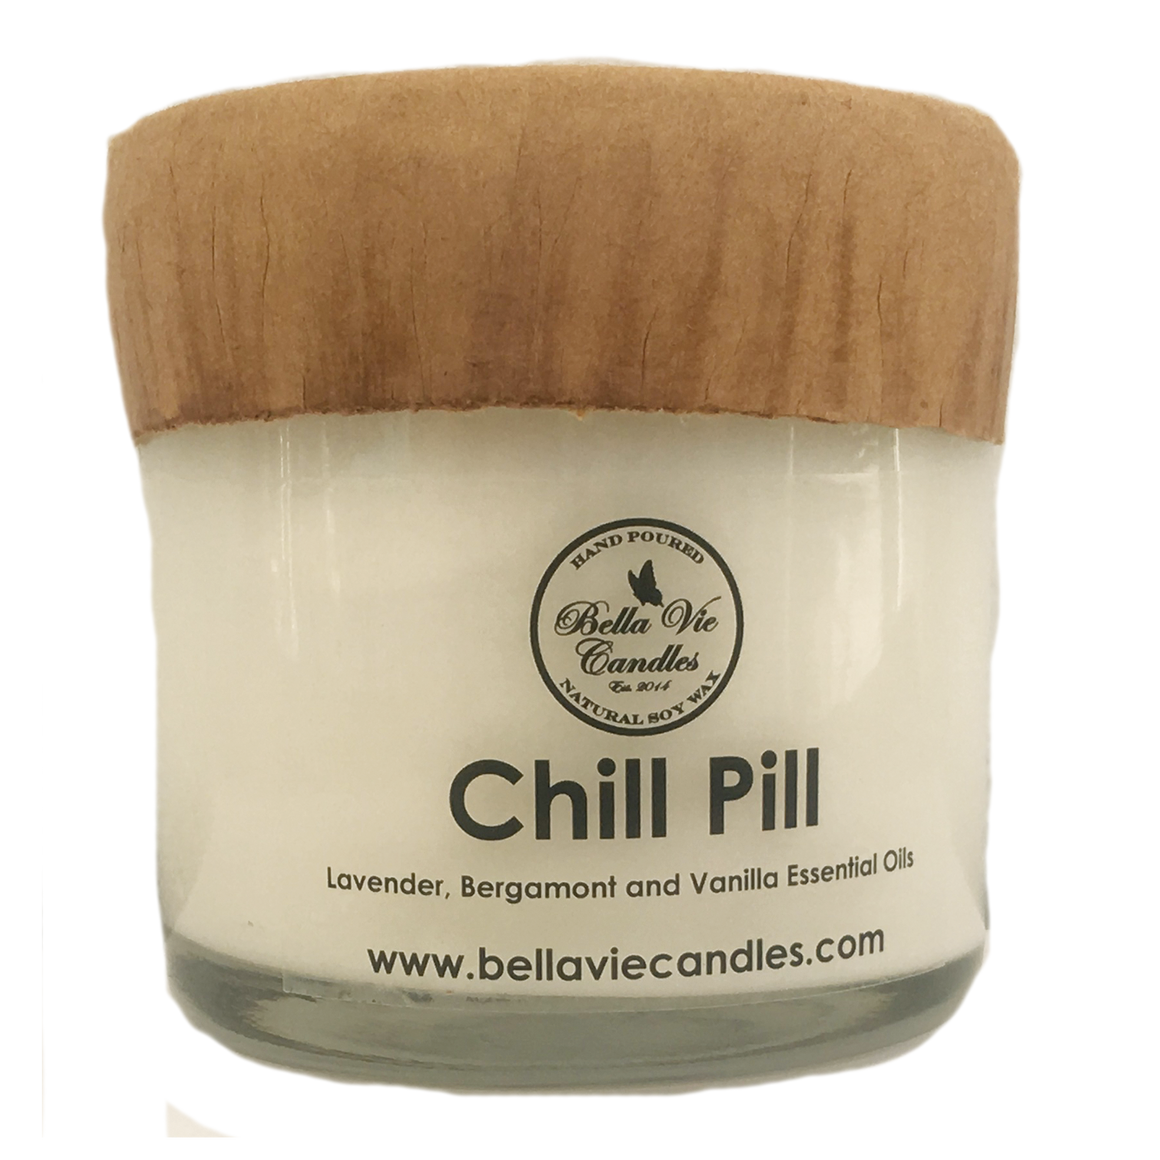 Chill Pill Original Scented Essential Oil Soy Candle